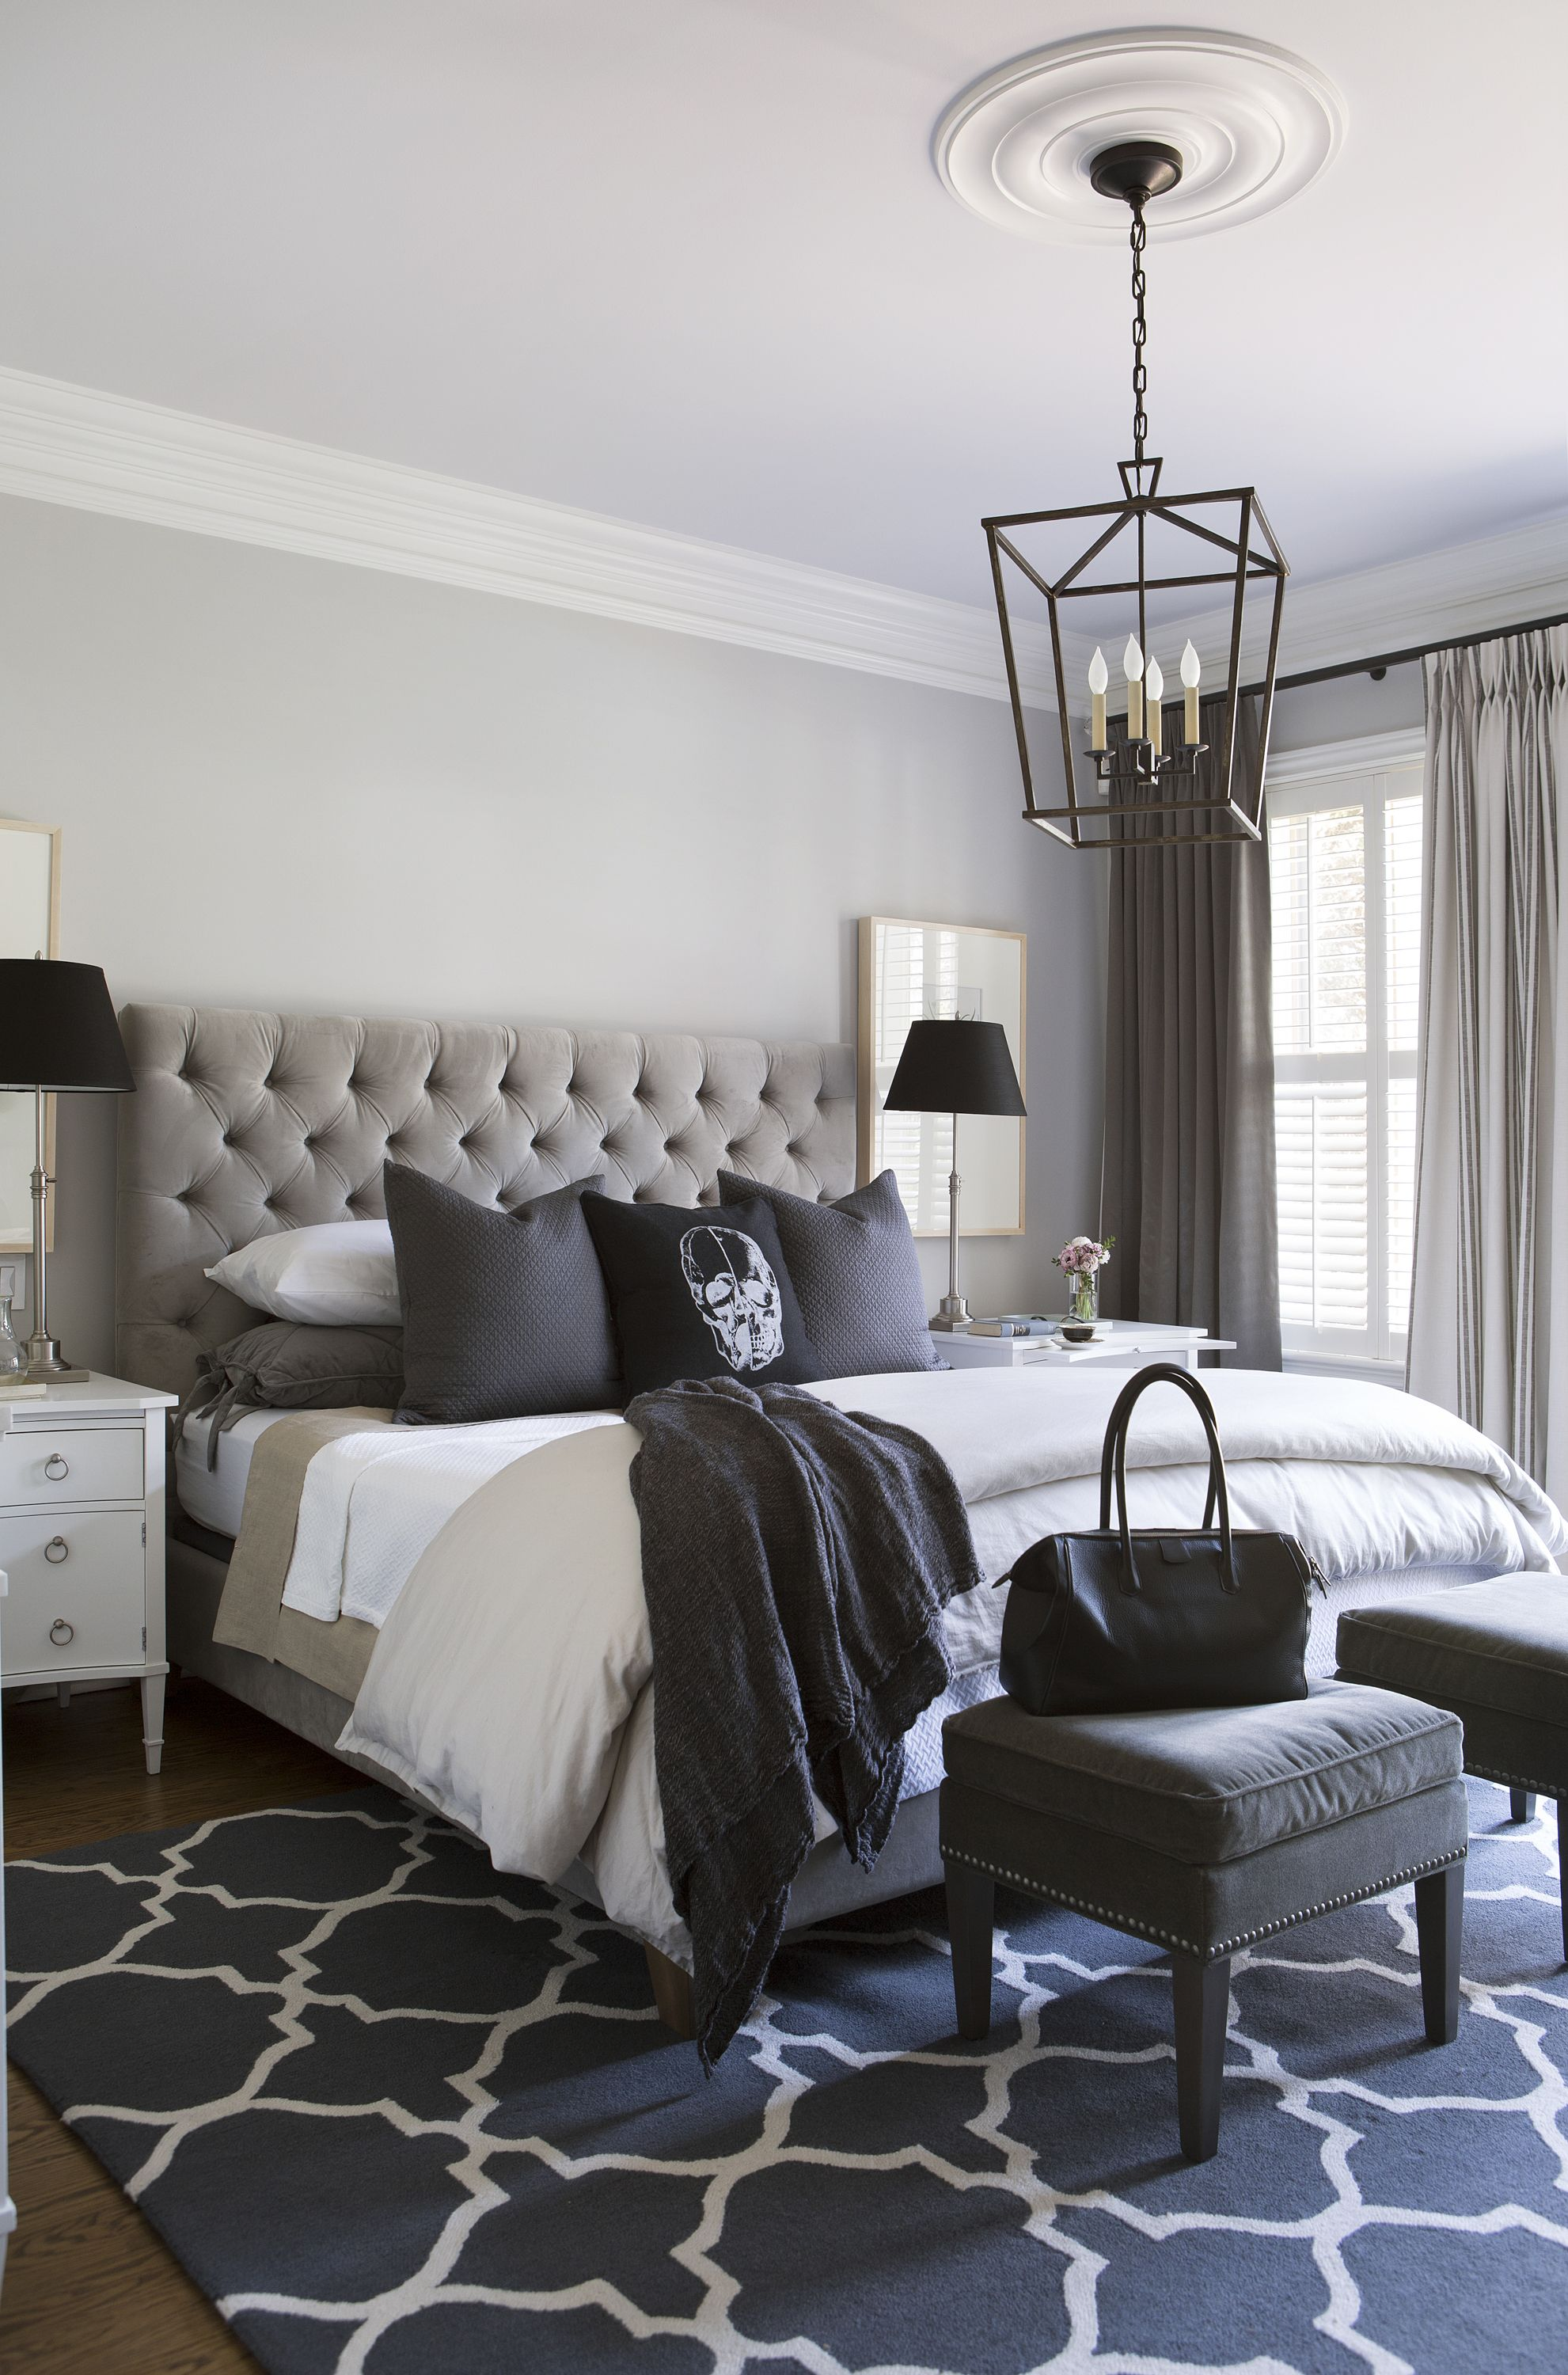 Attirant Master Bedroom In Greys And Lavender With Skull Cushion. Jean Stephane  Beauchamp Design. Photo. Master Bedroom GreyWhite Bedroom Black ...